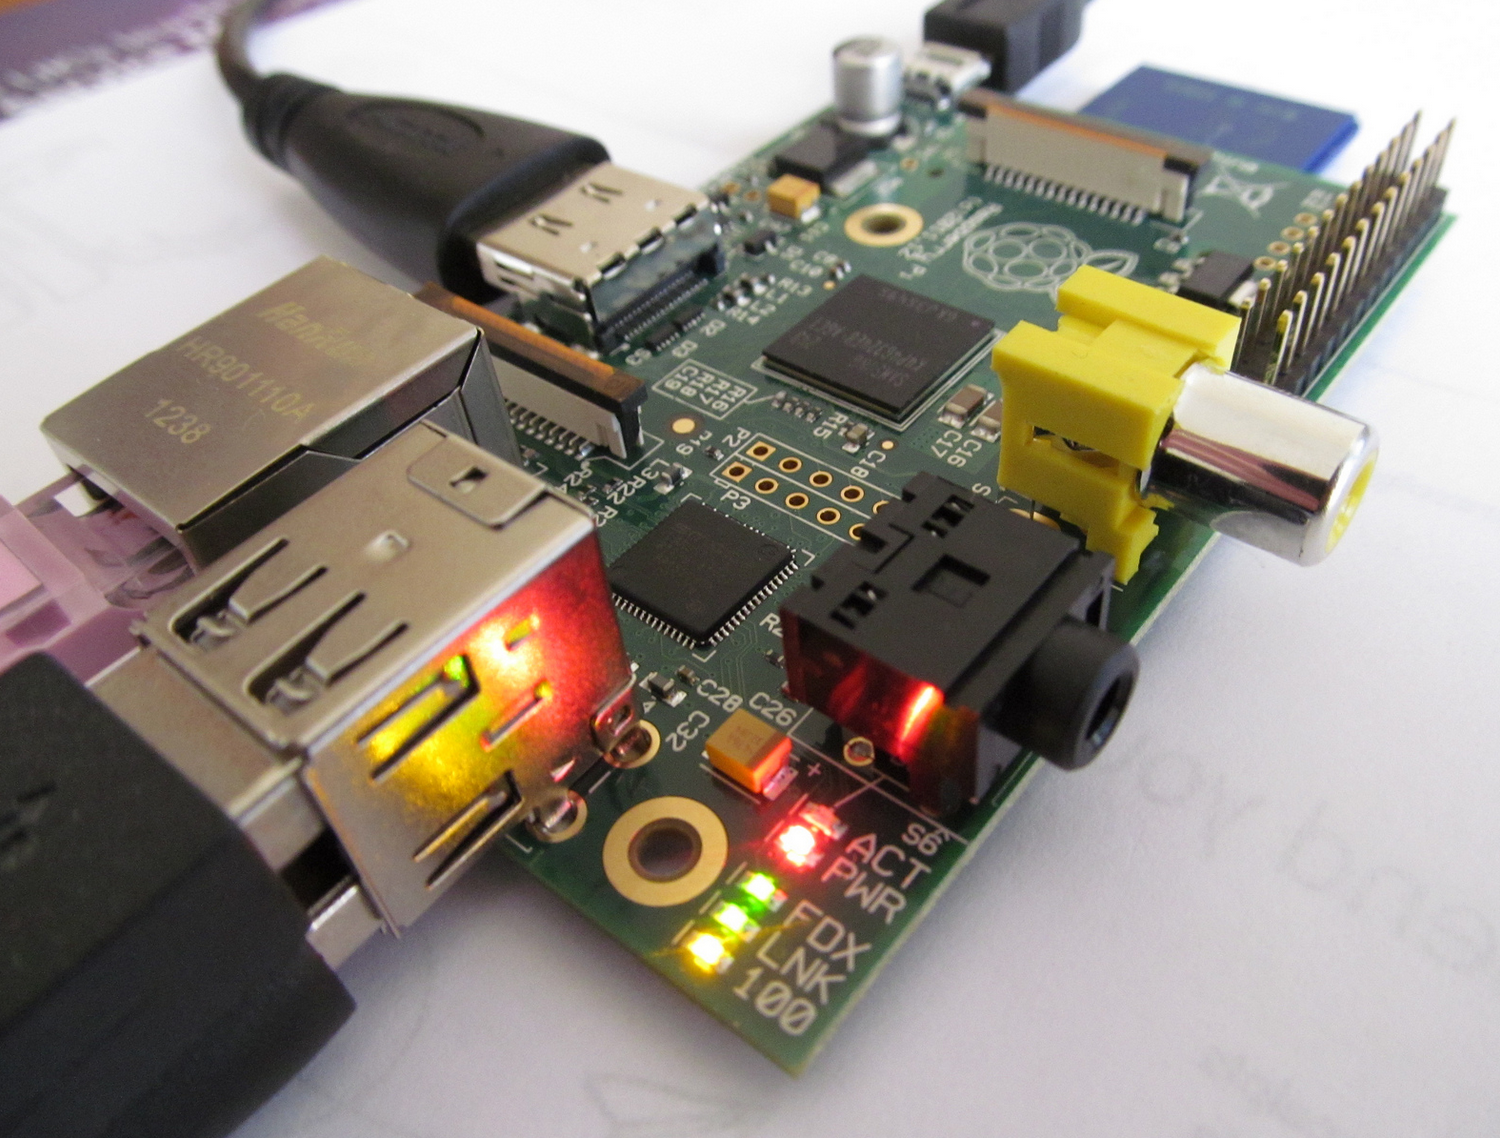 How to make a DIY home alarm system with a raspberry pi and